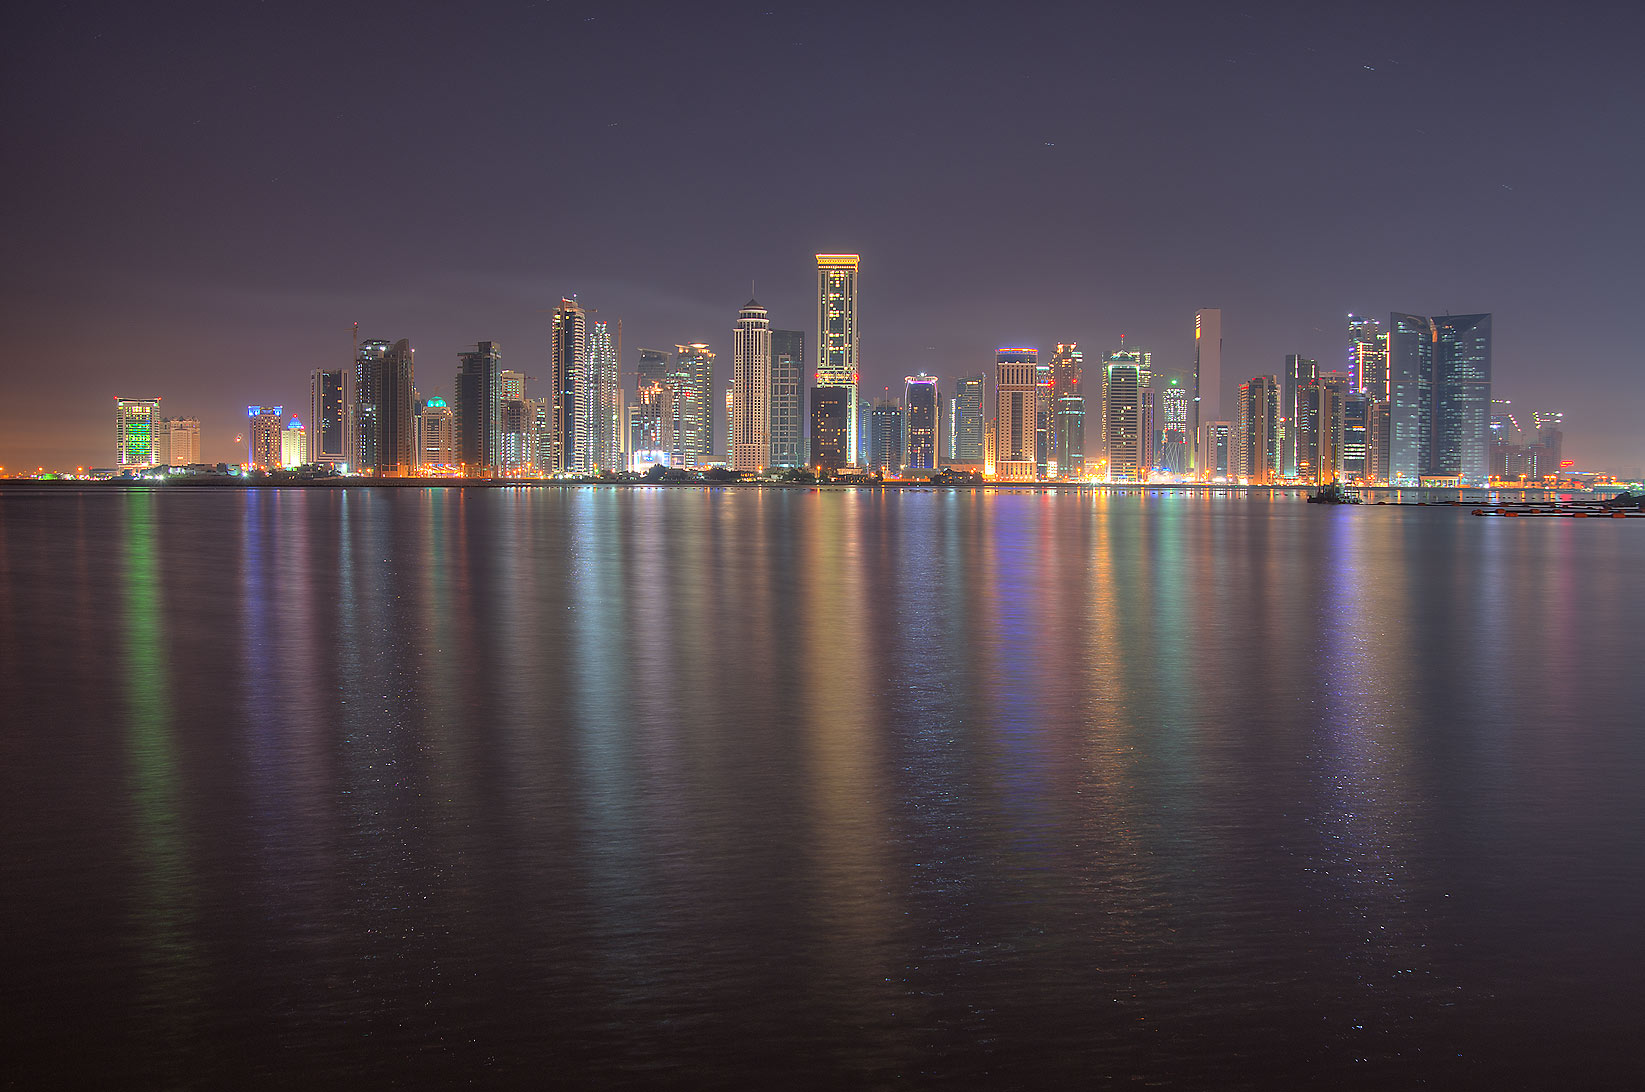 Reflections of West Bay from a beach near...Hotel before sunrise. Doha, Qatar